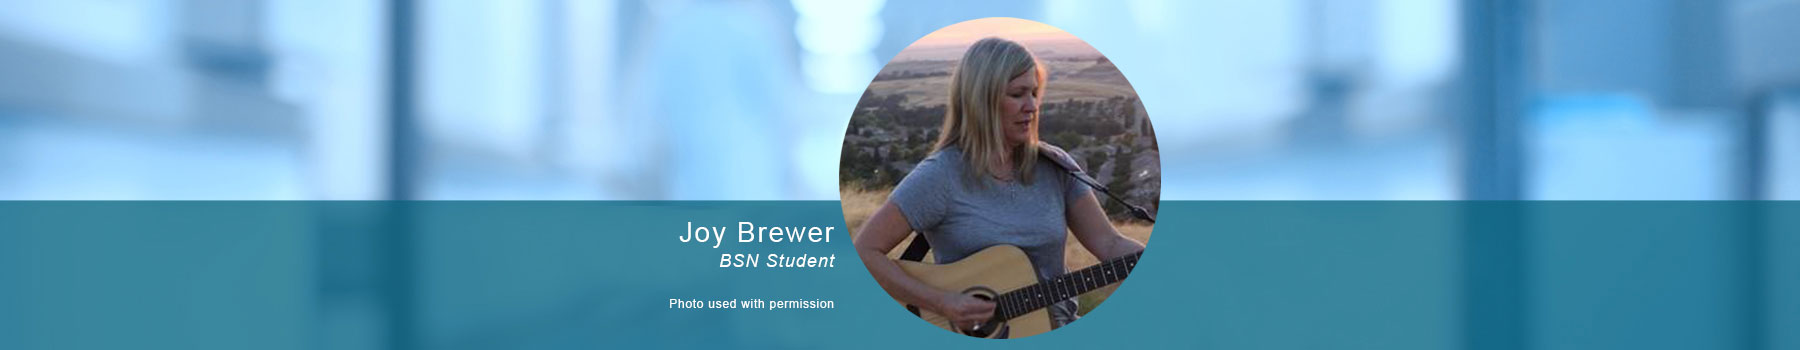 California Labor and Delivery Nurse and Longtime Musician Embraces Lifelong Learning